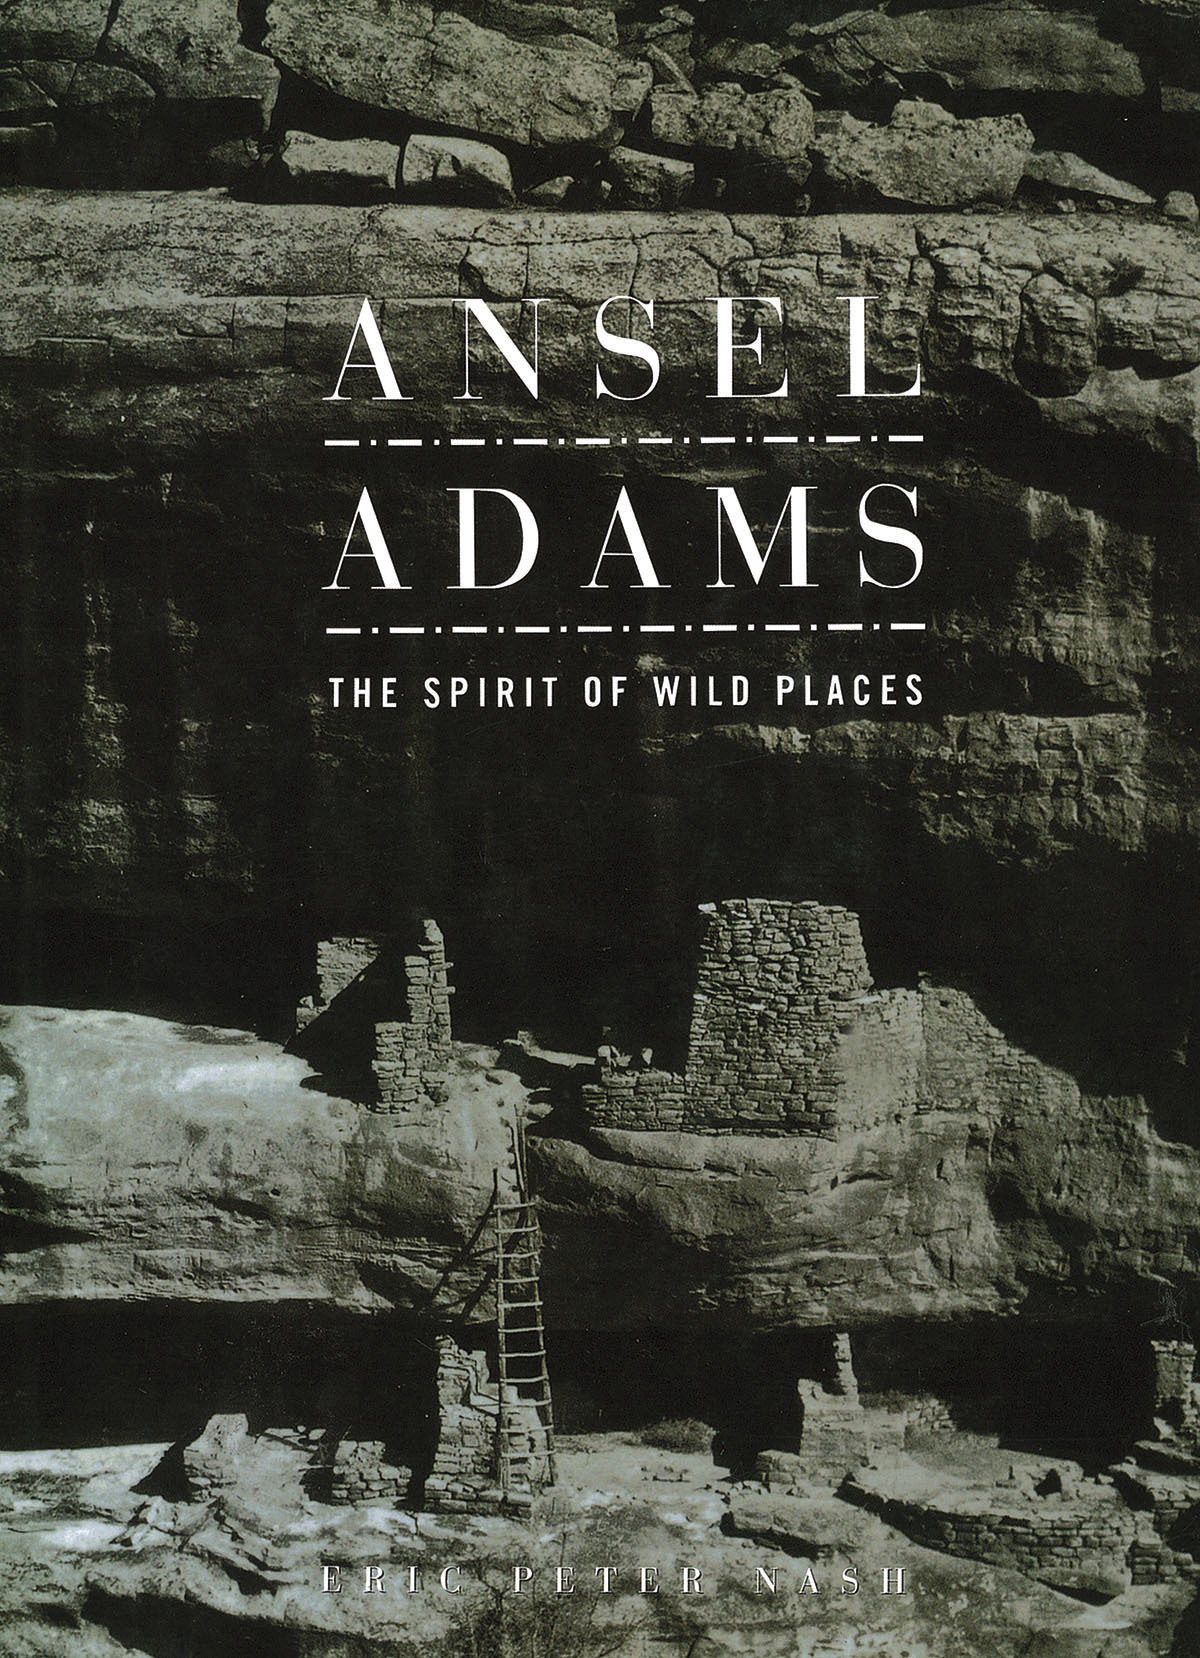 Ansel Adams: The Spirit of Wild Places (Art Series)